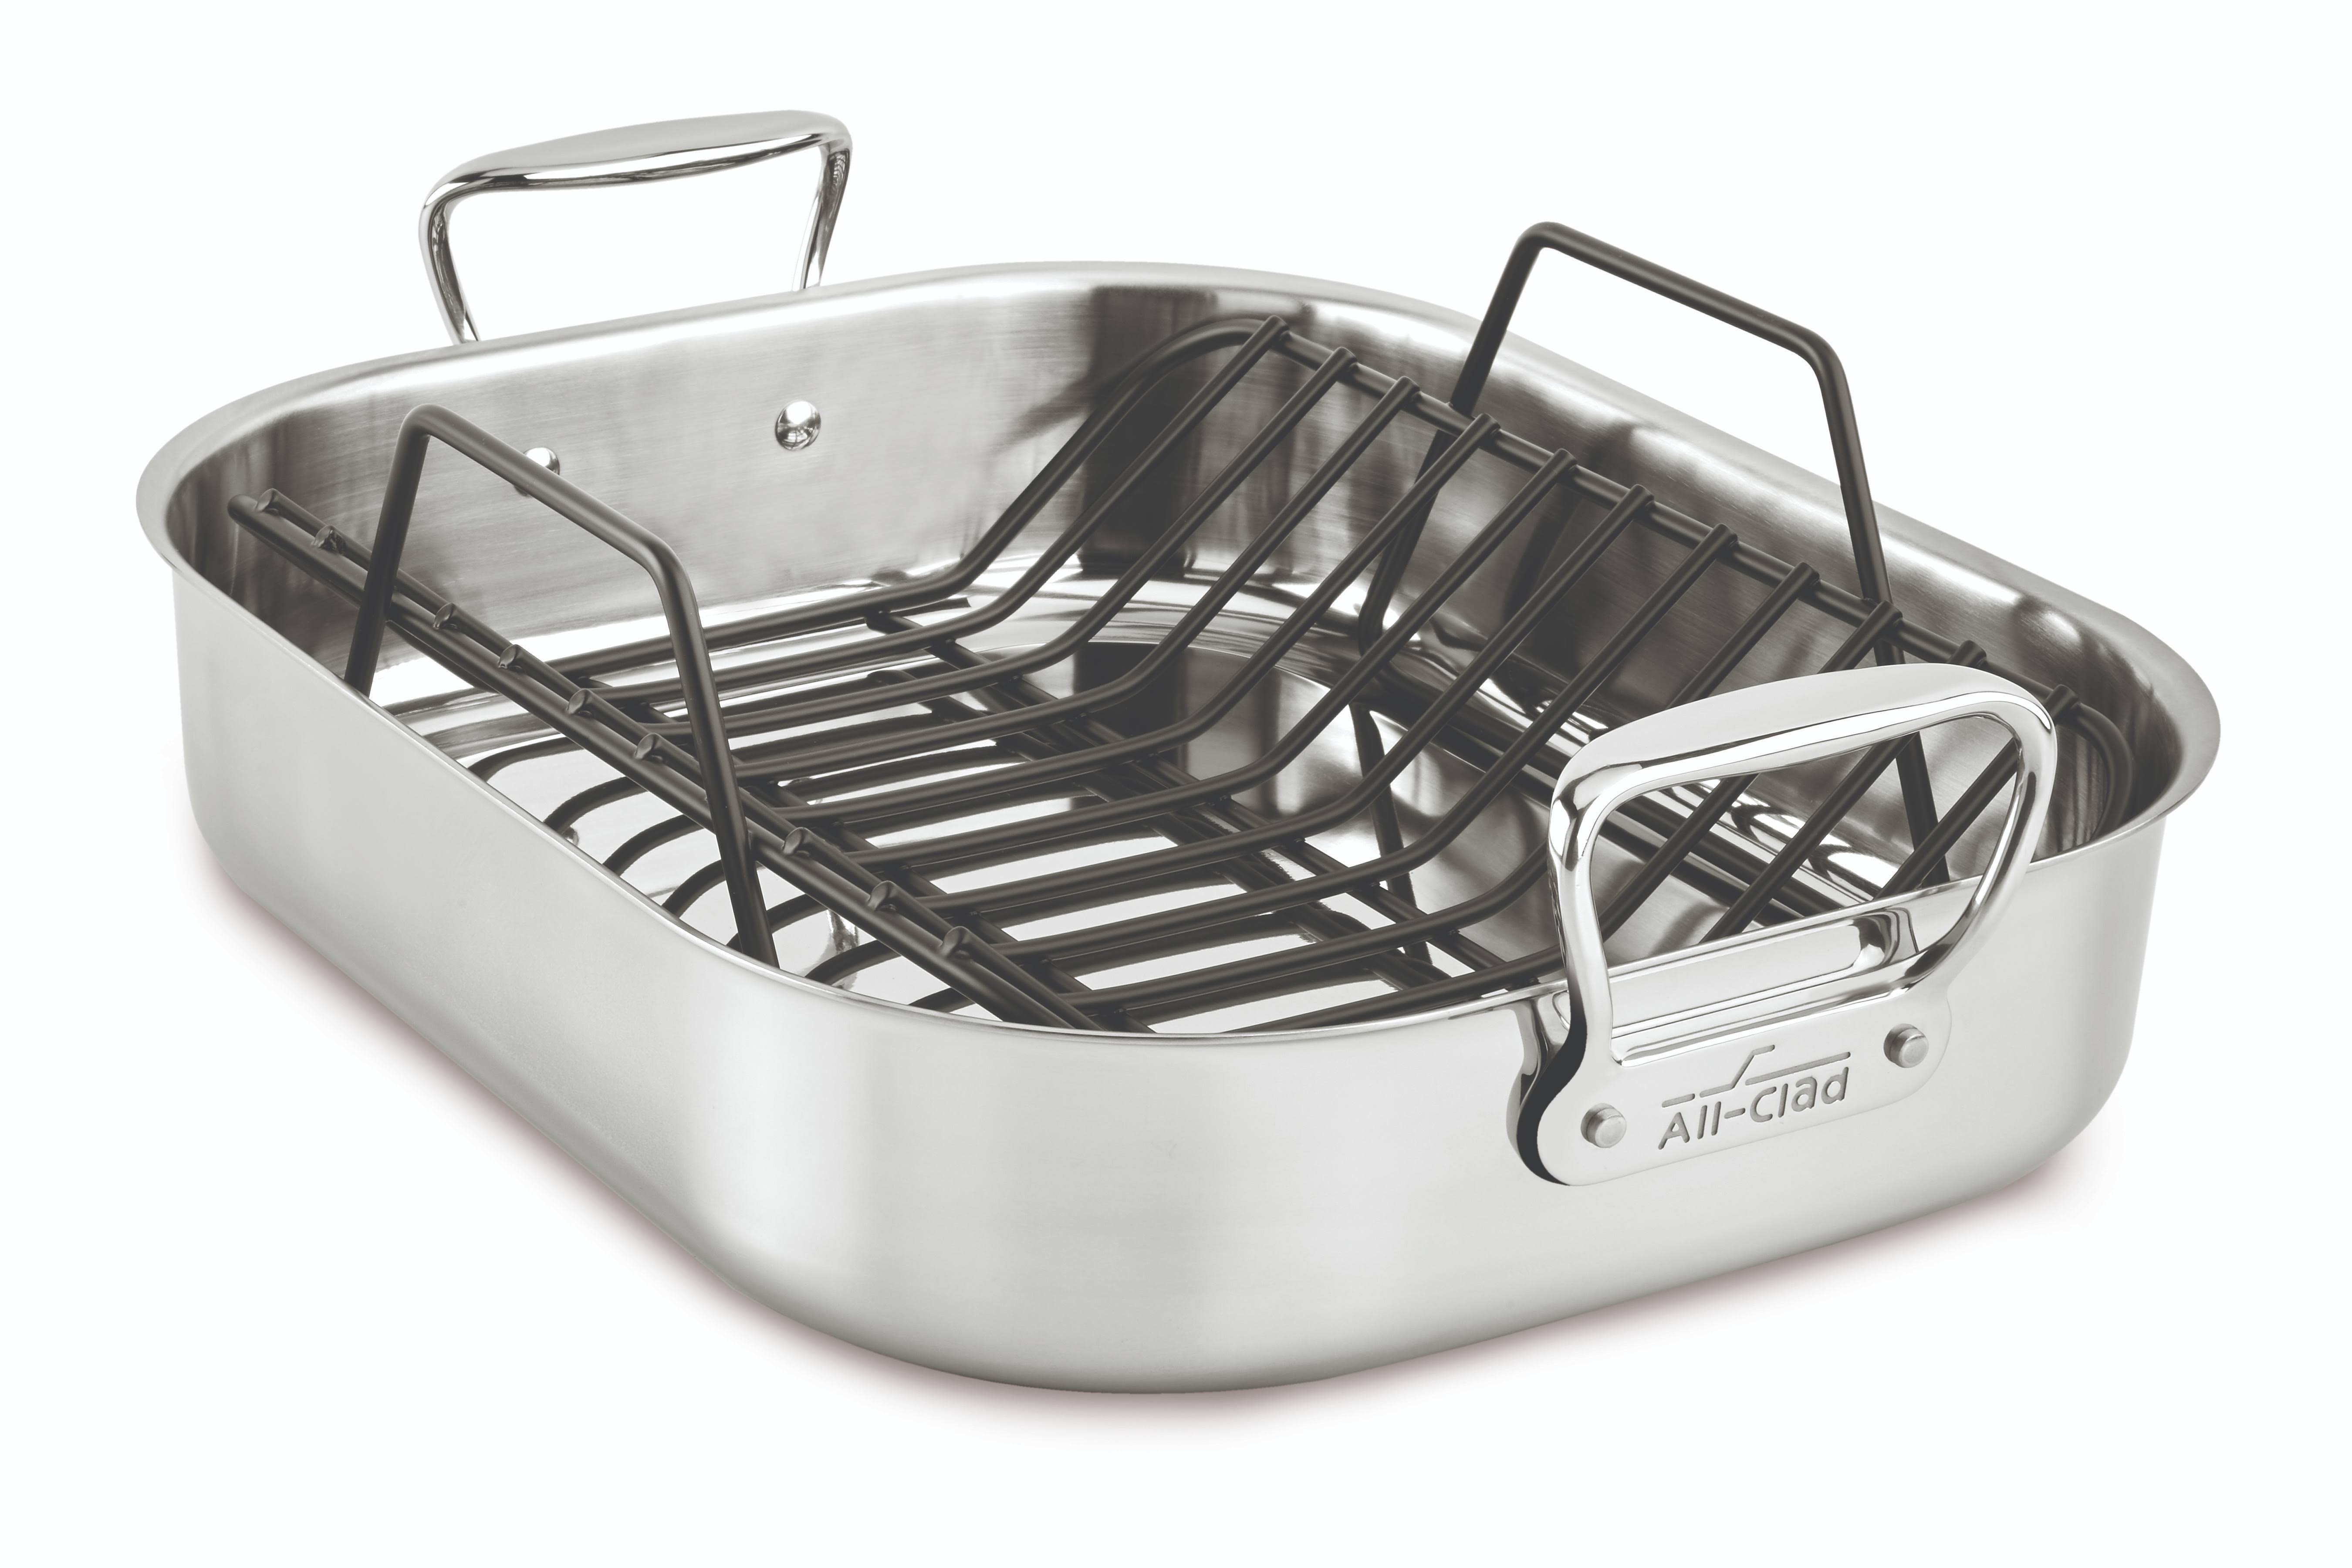 "All-clad Stainless Steel Roaster - 16"" x 13"""